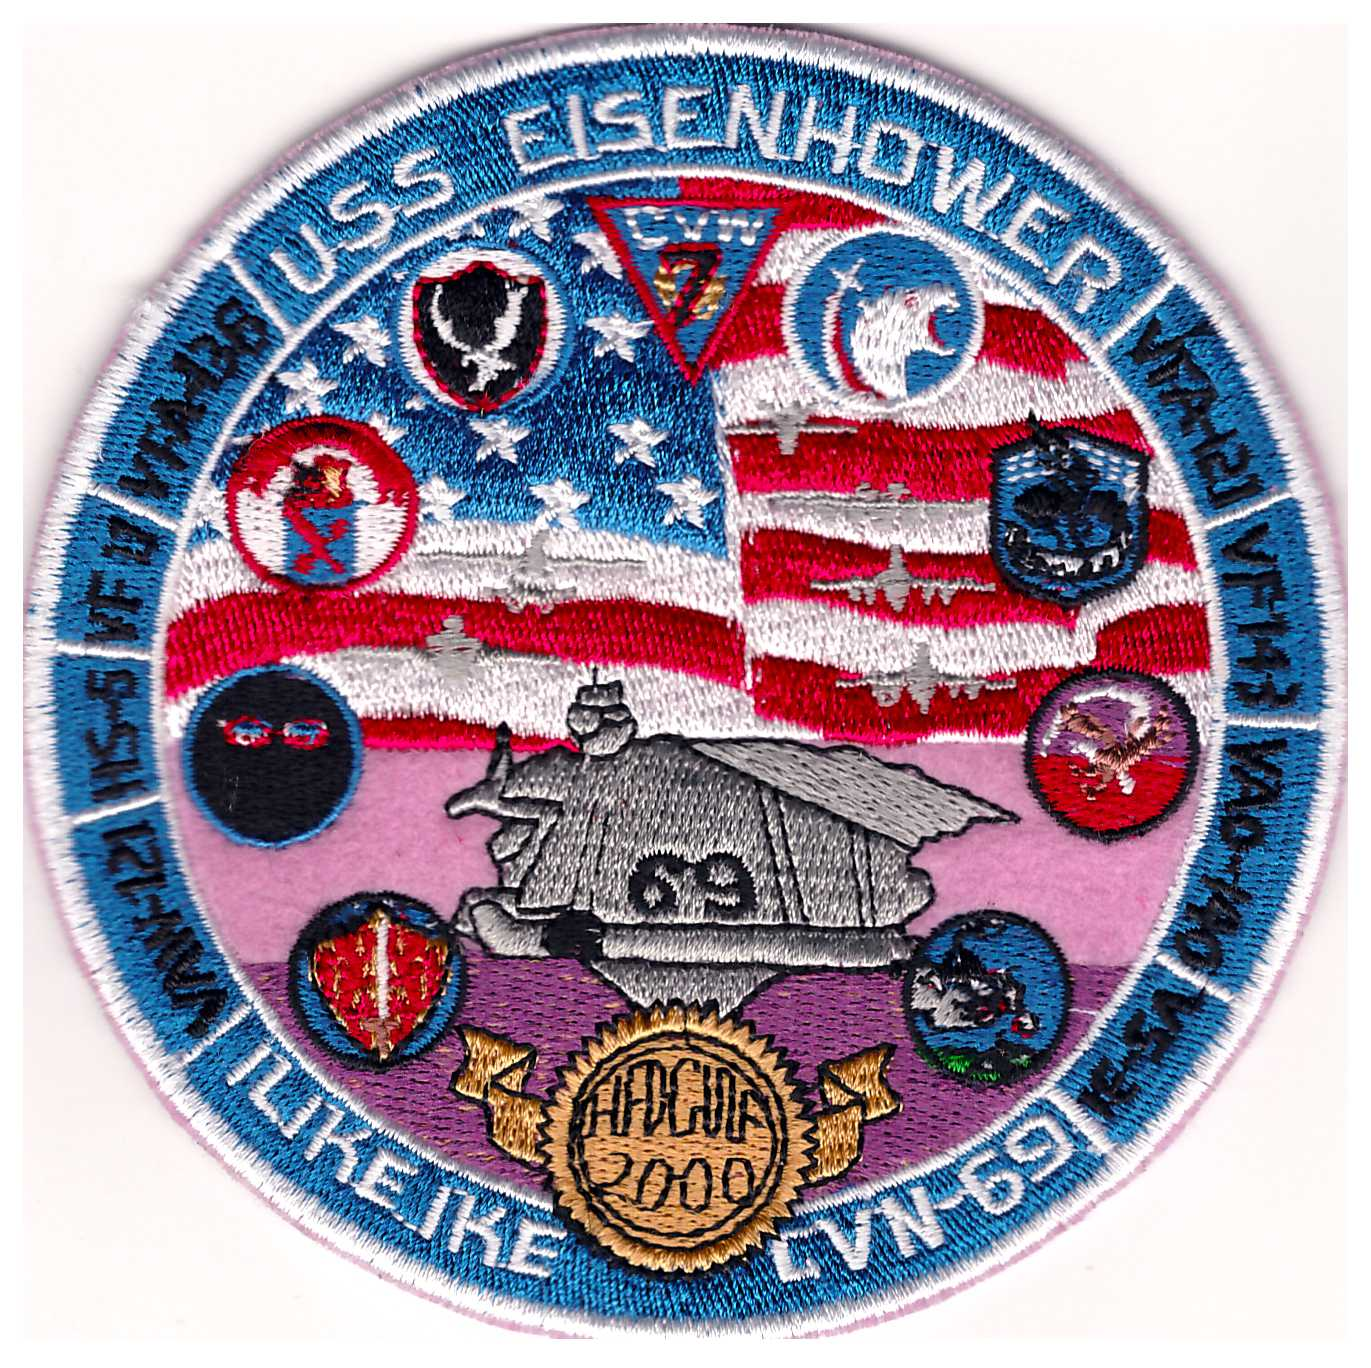 CVN-69 2000 'Gaggle' Cruise Patch (Handmade)